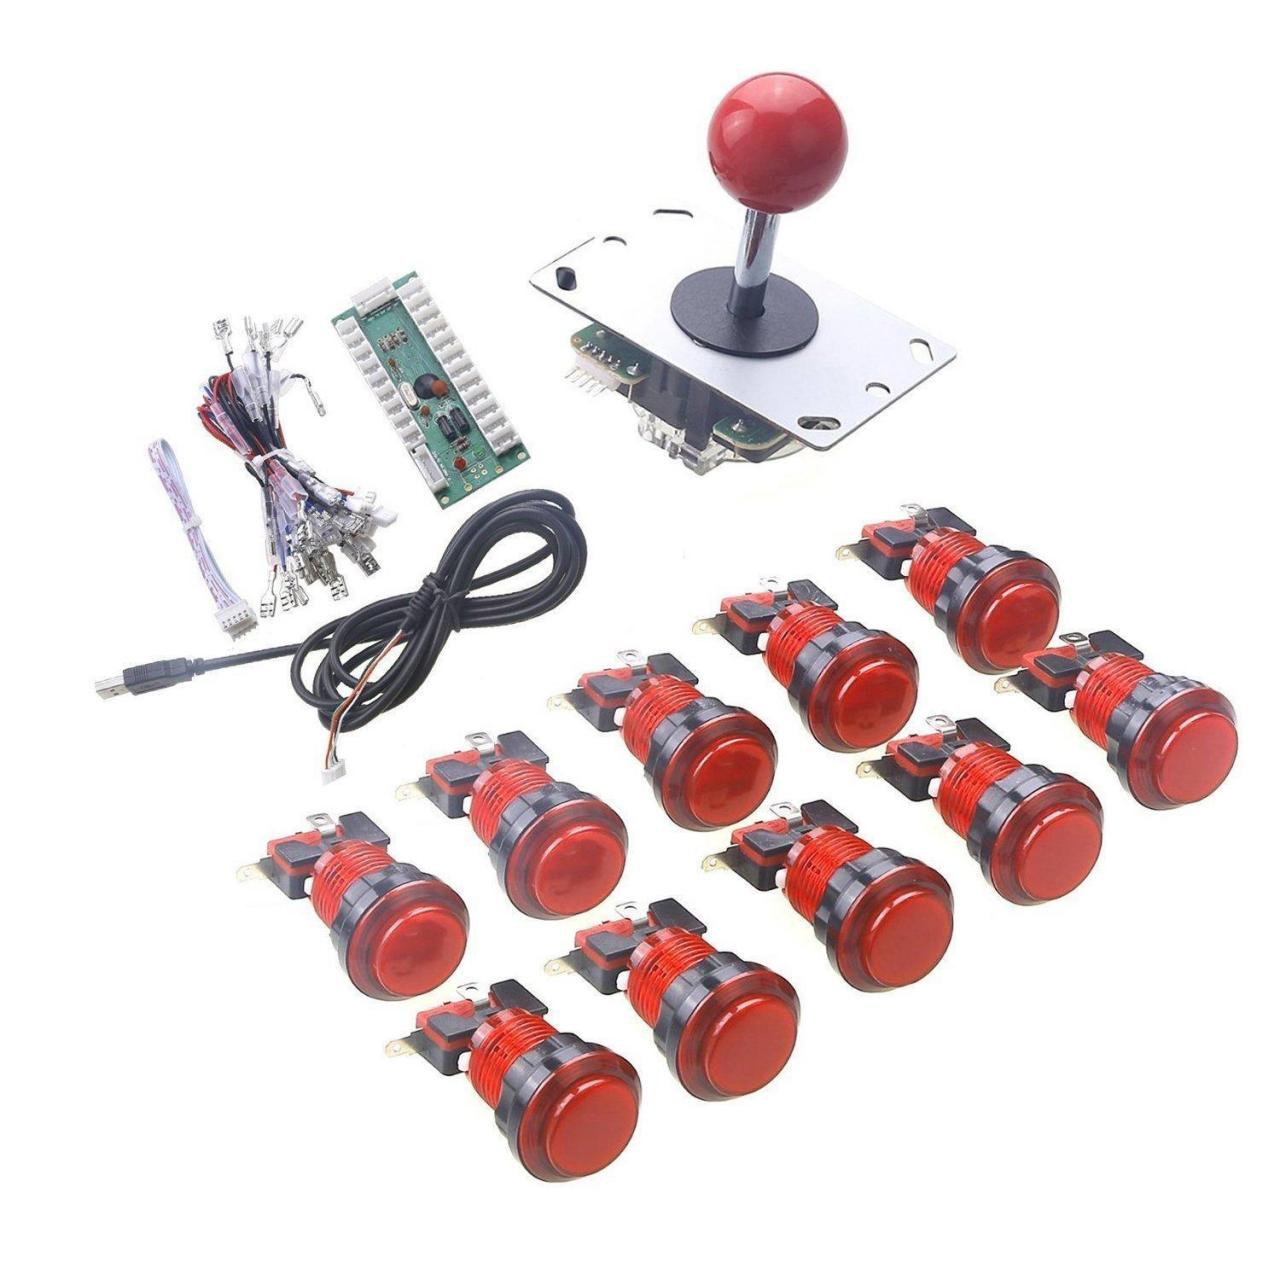 Buy cheap 1 Player LED Arcade Button and 5Pin Joystick DIY Kit - Red from wholesalers